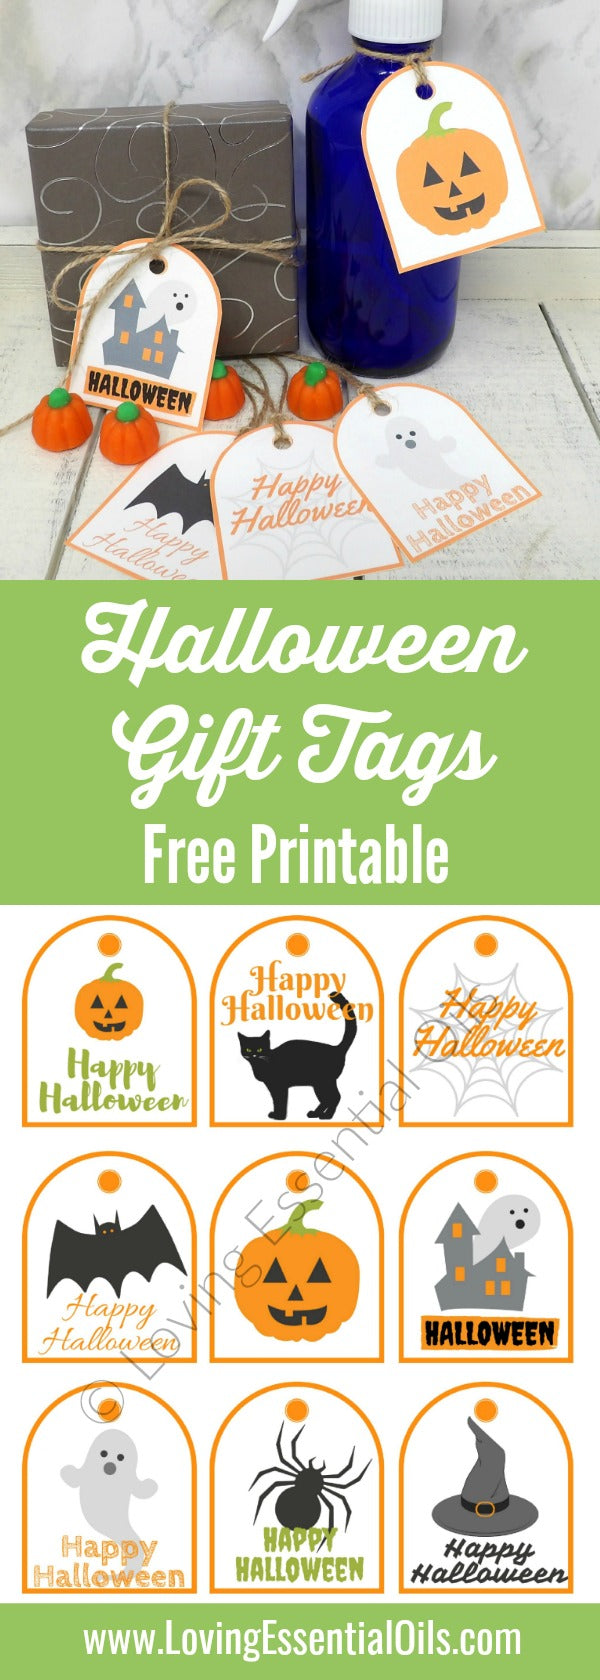 graphic regarding Printable Halloween Gift Tags known as Totally free Printable Halloween Present Tags Loving Very important Oils